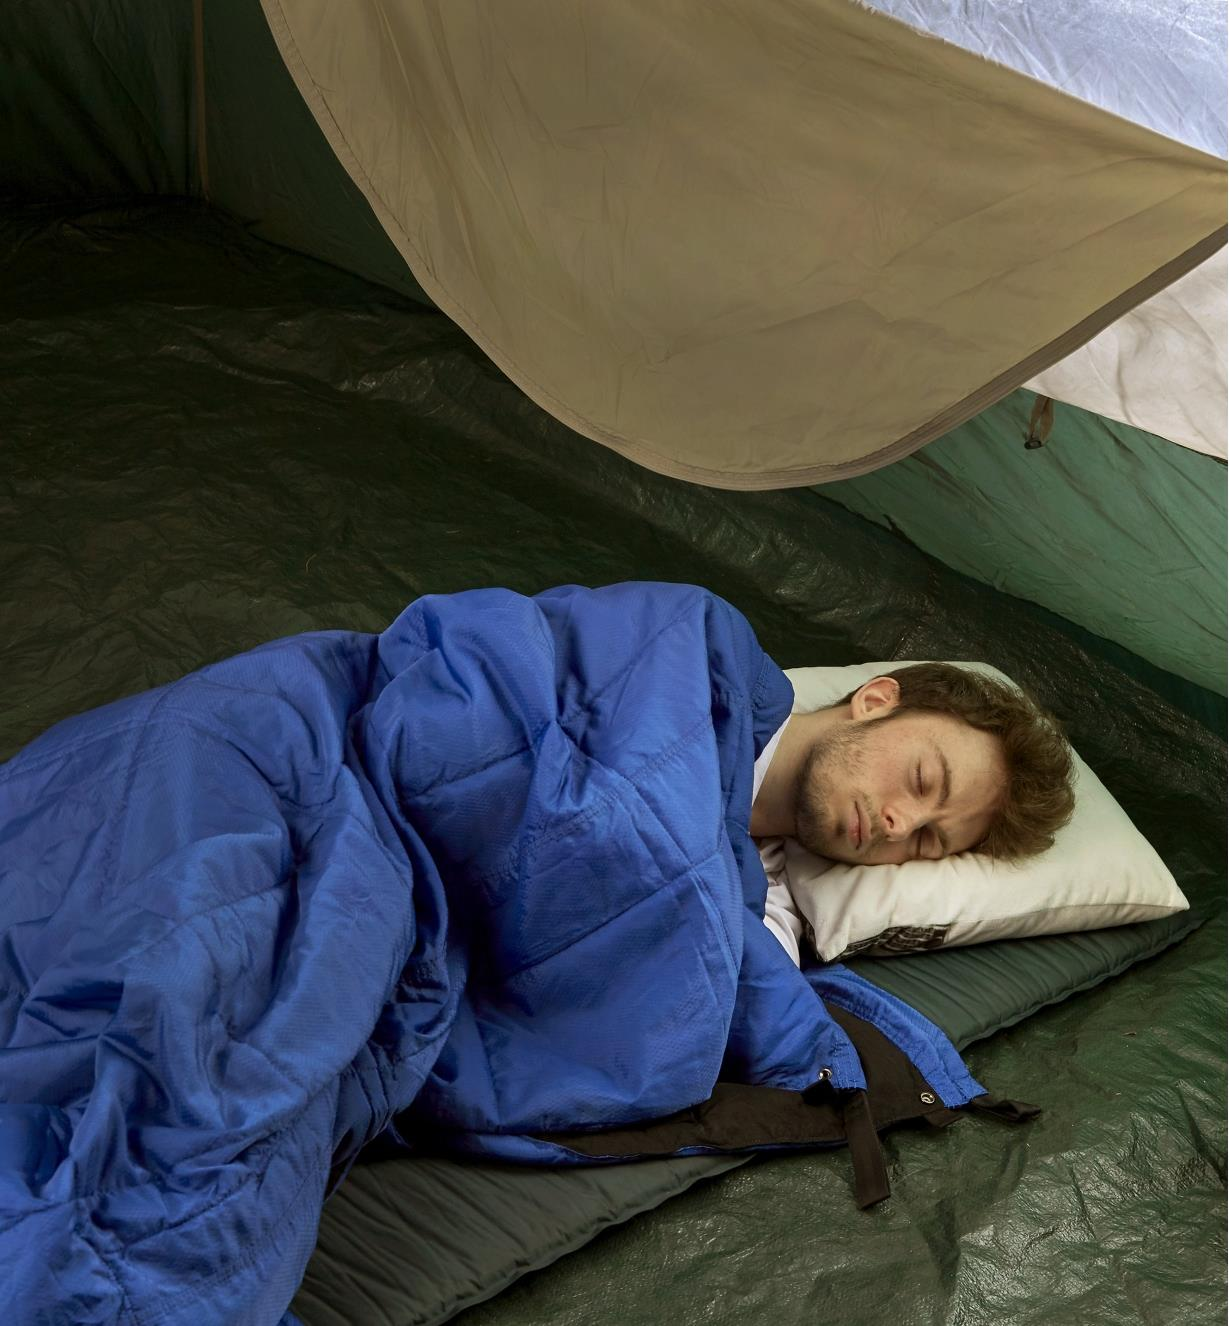 A Kubie multifunction blanket being used as a sleeping bag